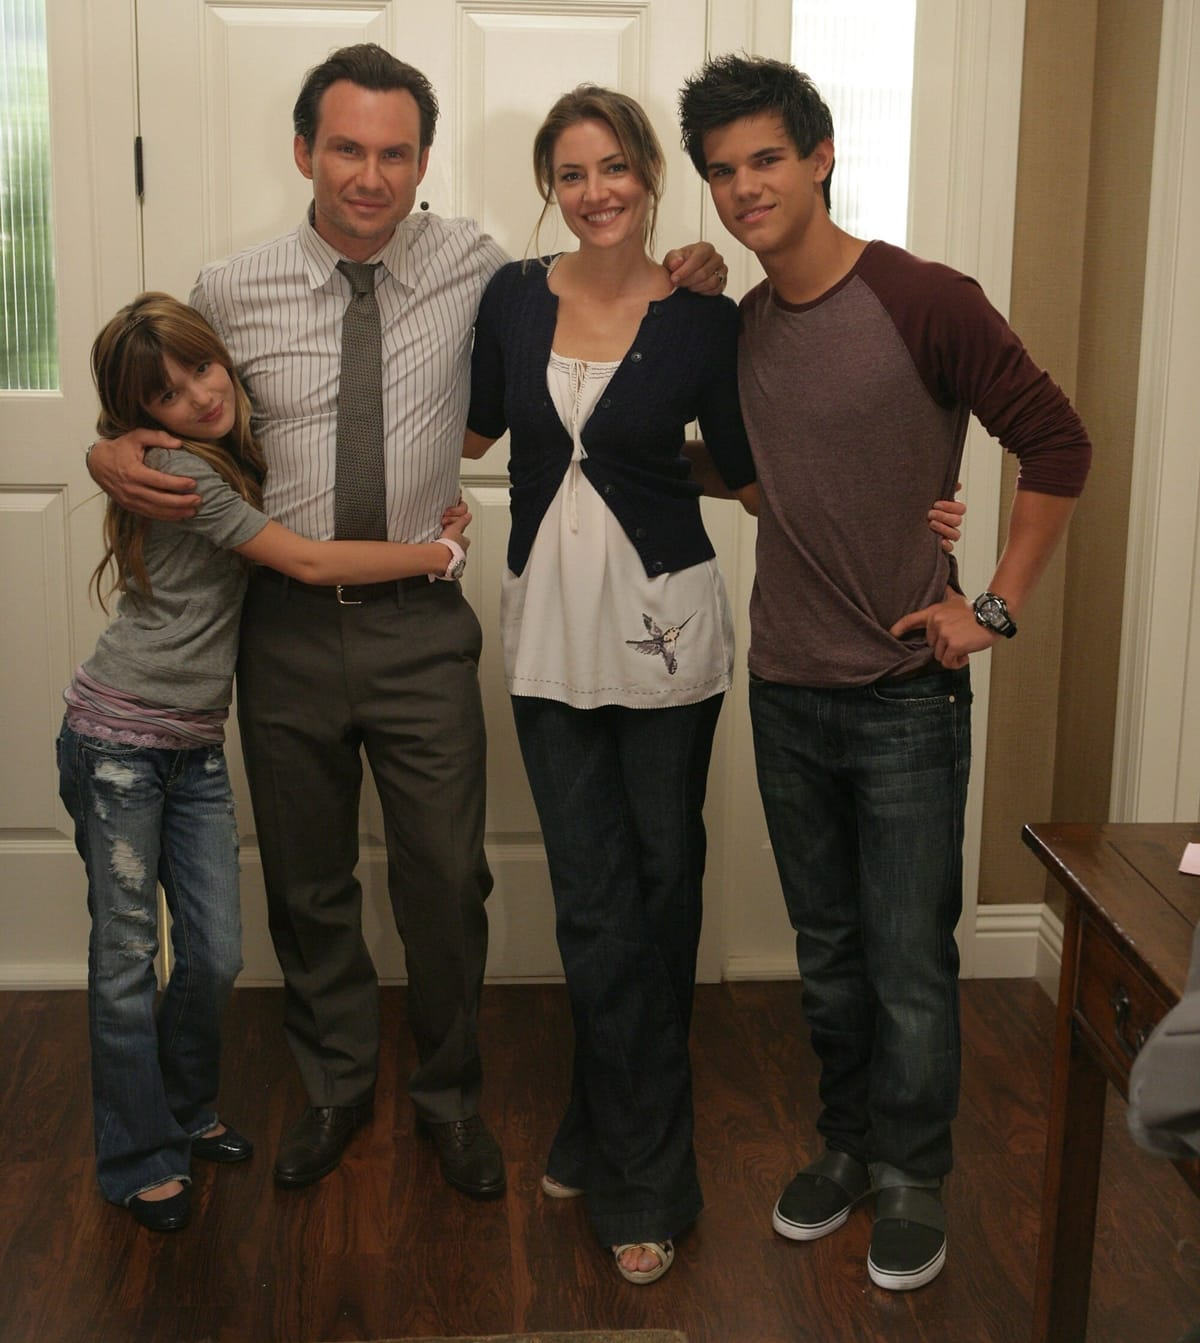 Bella Thorne was 11 years old when starring with Christian Slater, Madchen Amick, and Taylor Lautner in My Own Worst Enemy